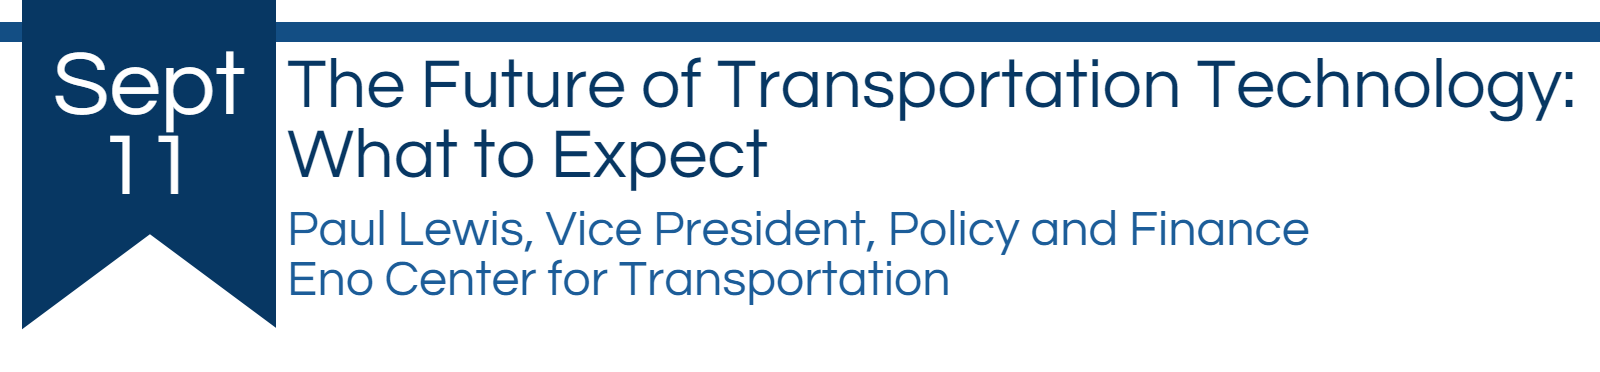 The future of transportation technology: what to expect by Paul Lewis